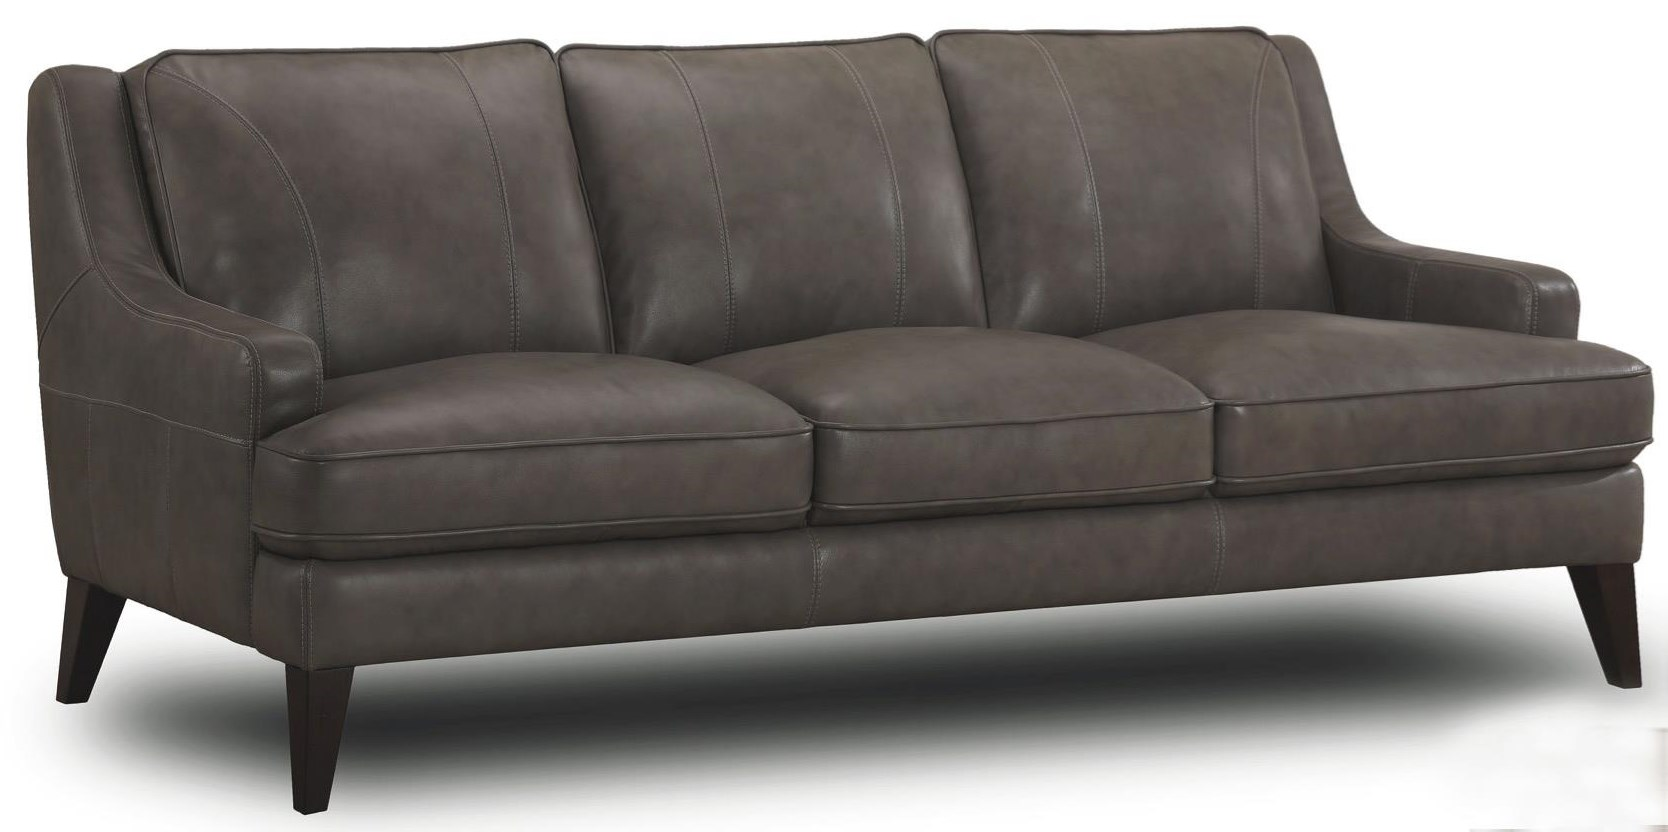 Stallion Leather Sofa at Walker's Furniture